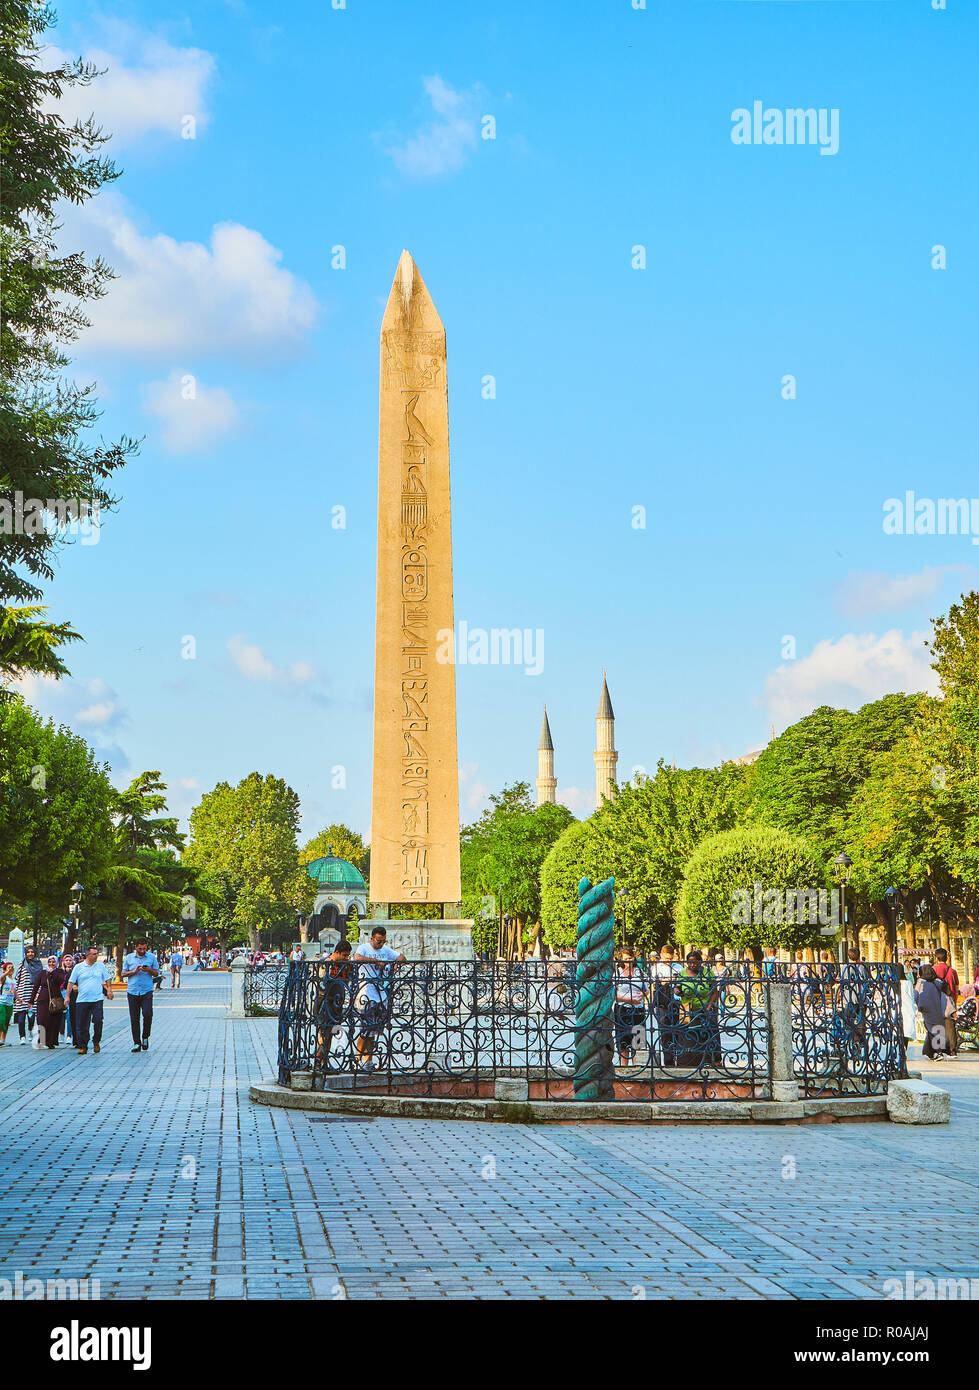 The Obelisk of Theodosius, an ancient Egyptian obelisk in the Hippodrome of Constantinople. Istanbul, Turkey. - Stock Image